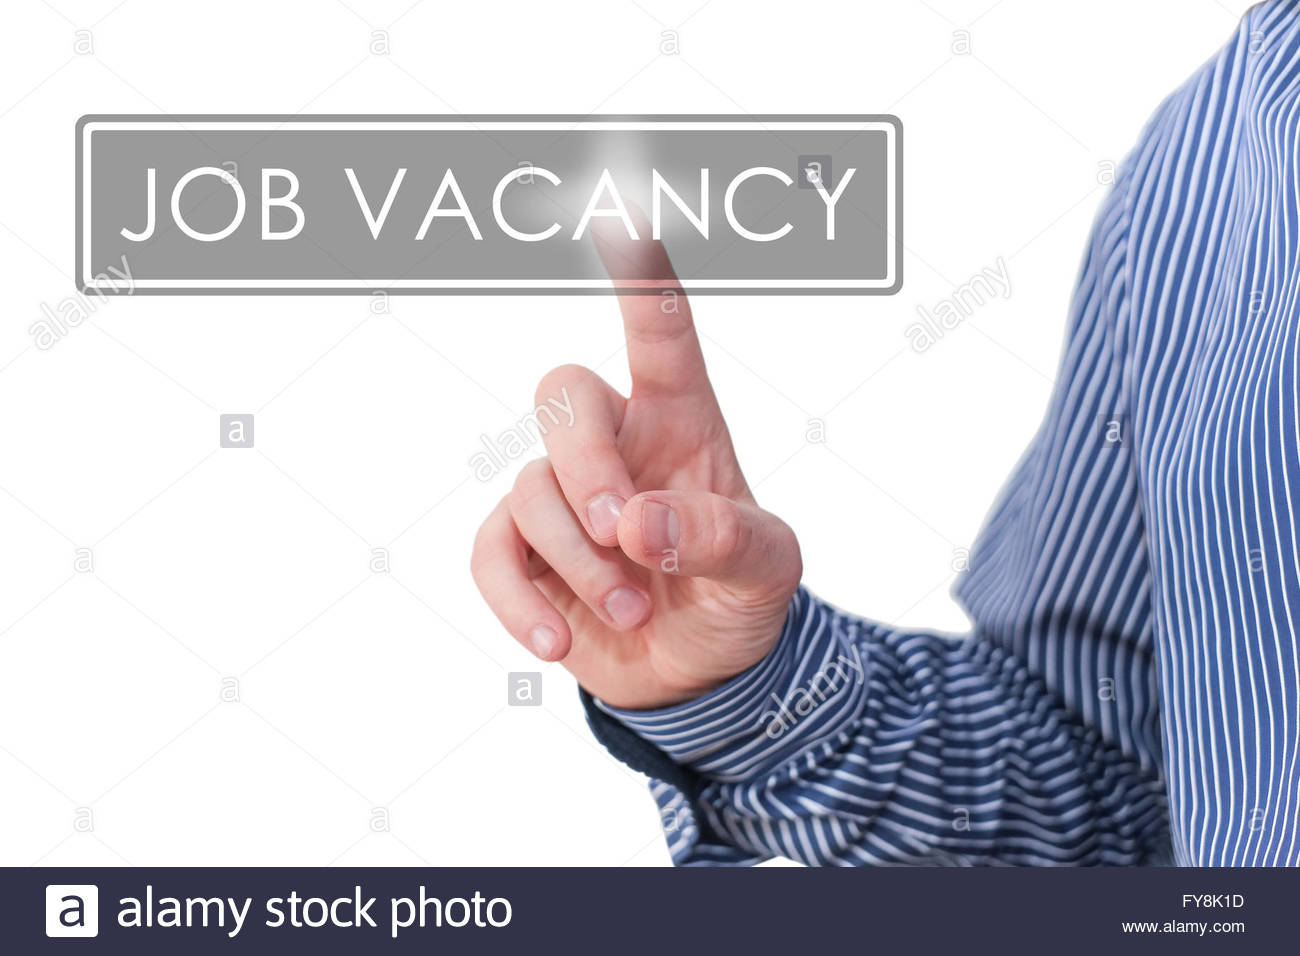 job vacancy - Stock Image